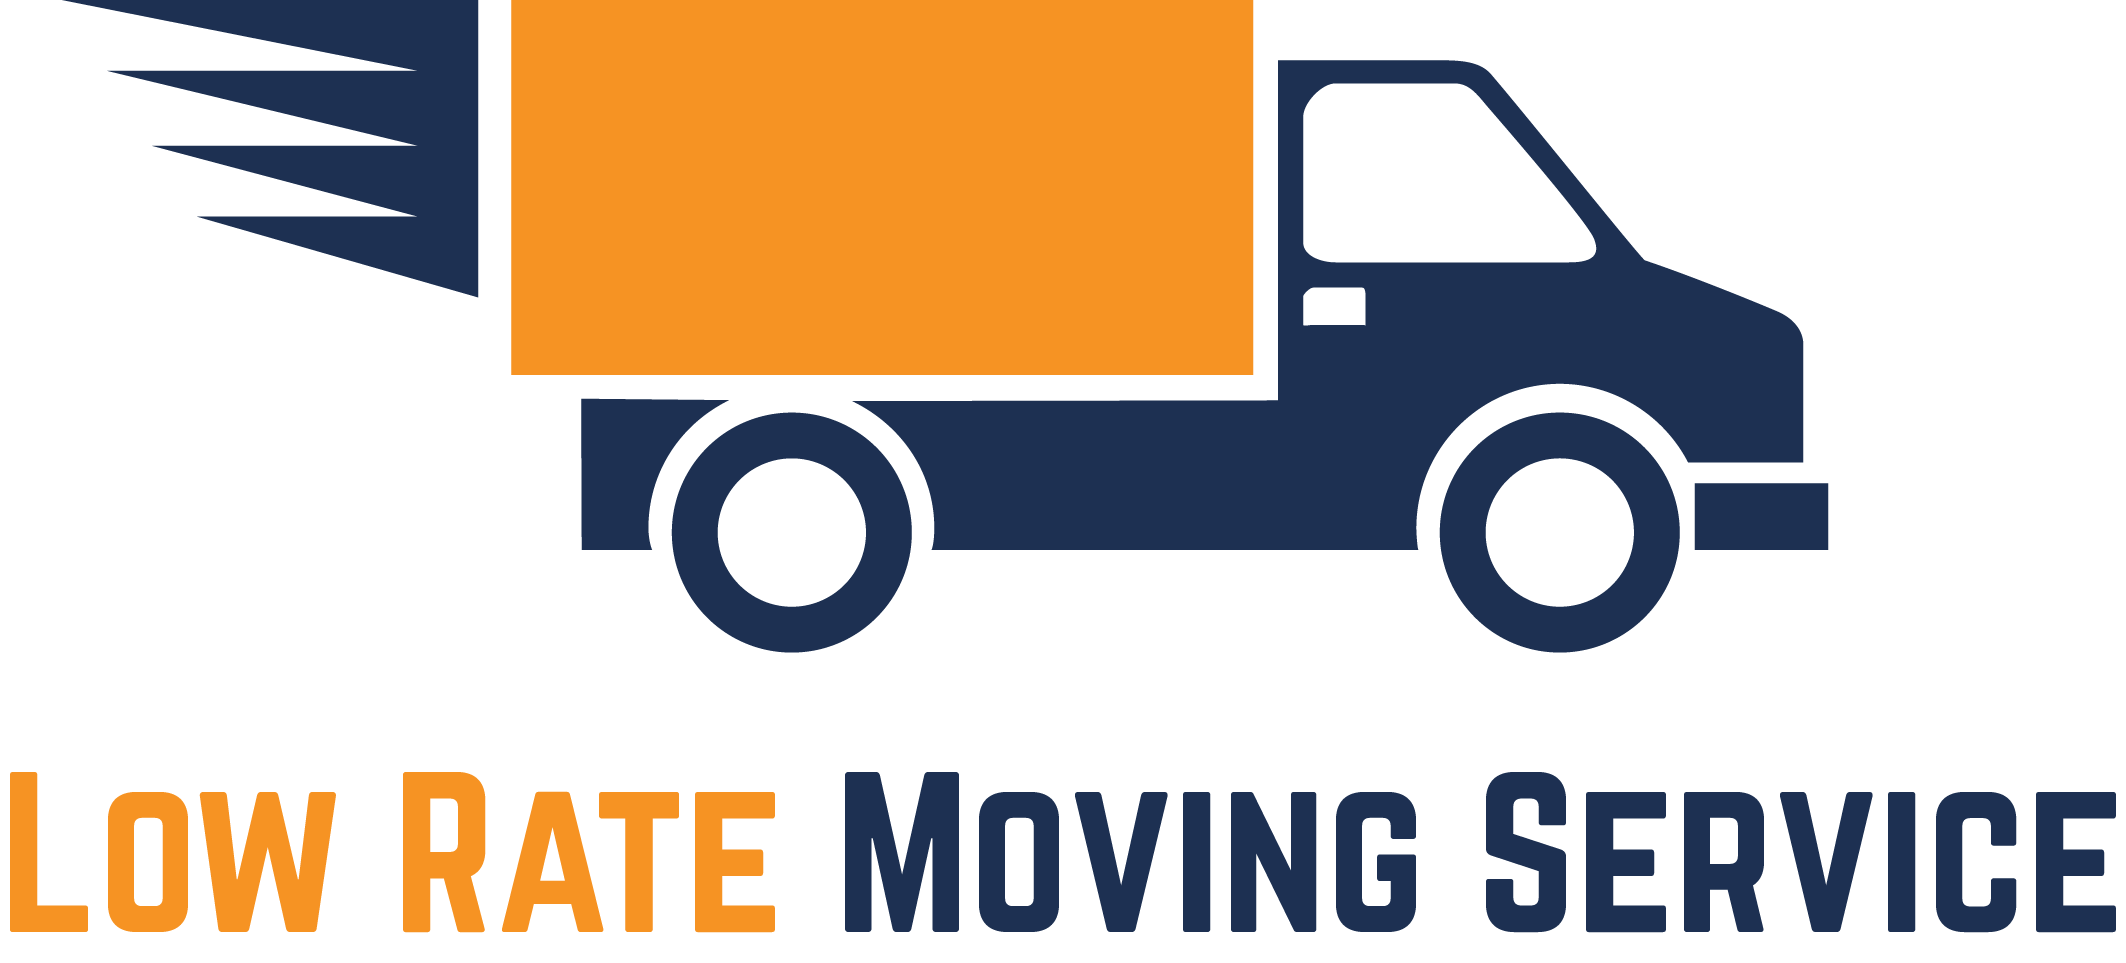 Low Rate Moving Service – Low Rate Moving Service